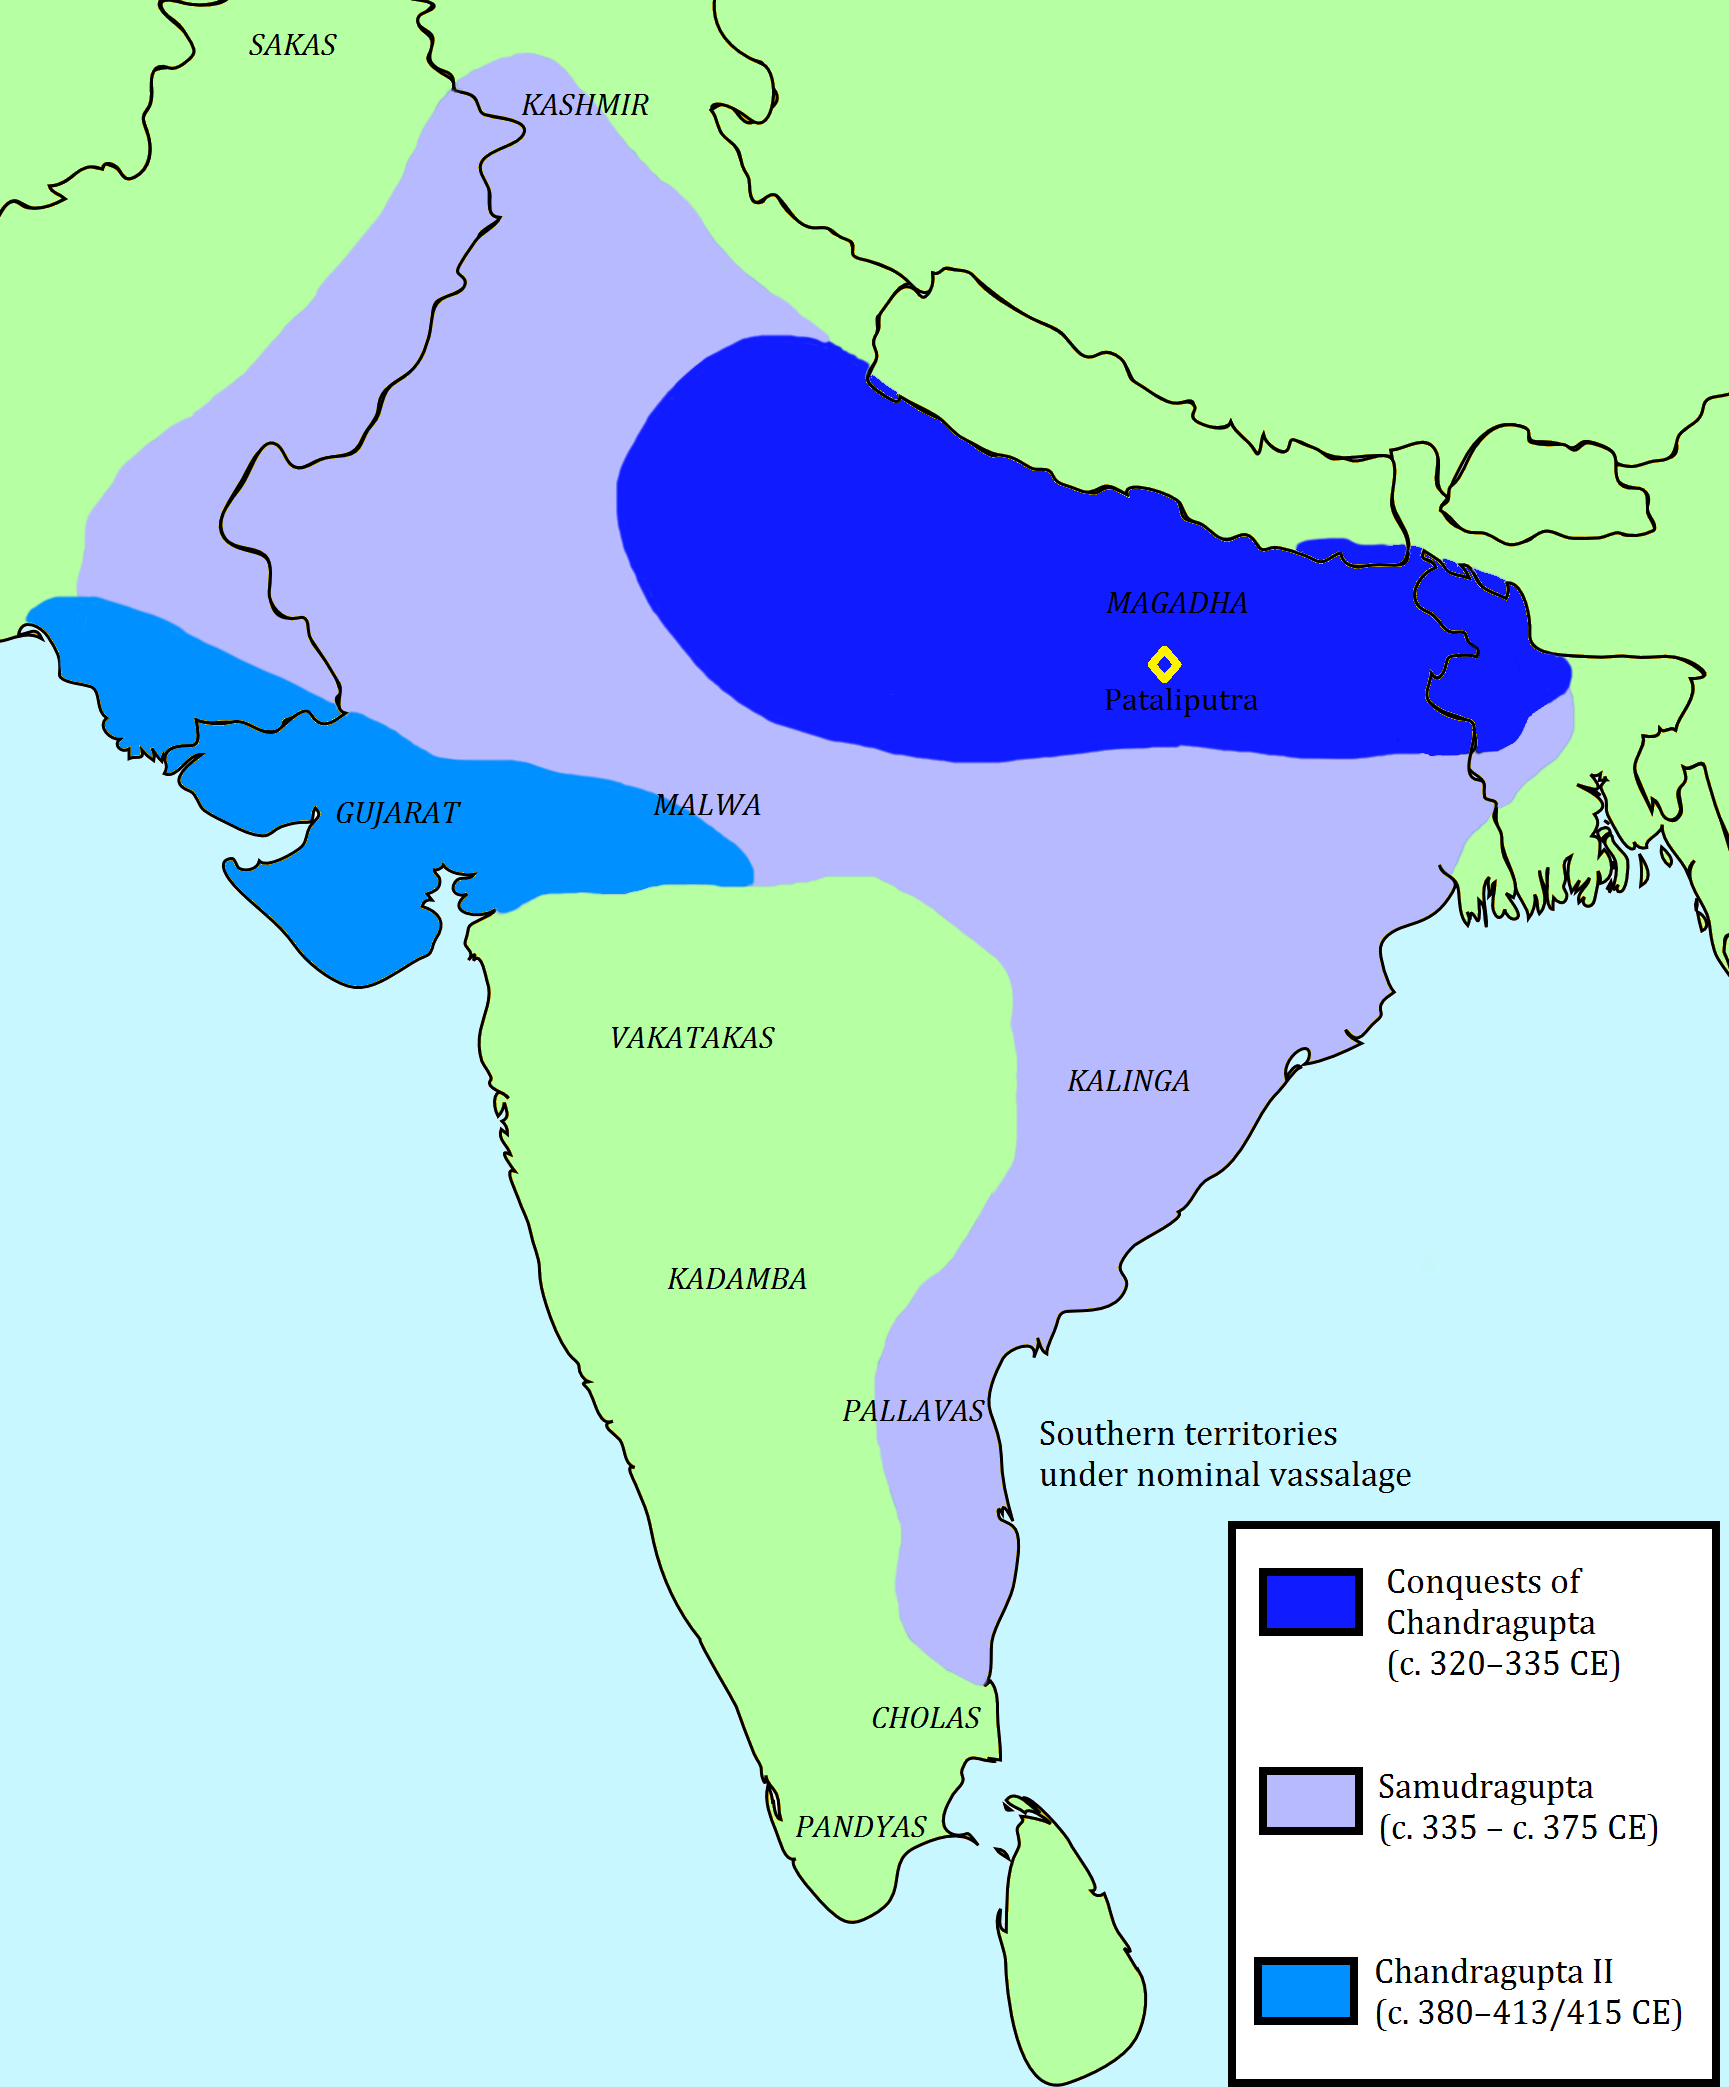 the indian sub continent was the home of the gupta dynasty Migrated into the indian sub-continent from their home north o a social class of hereditary and usually unchangeable status a sanskrit work meaning color to refer to their social classes.